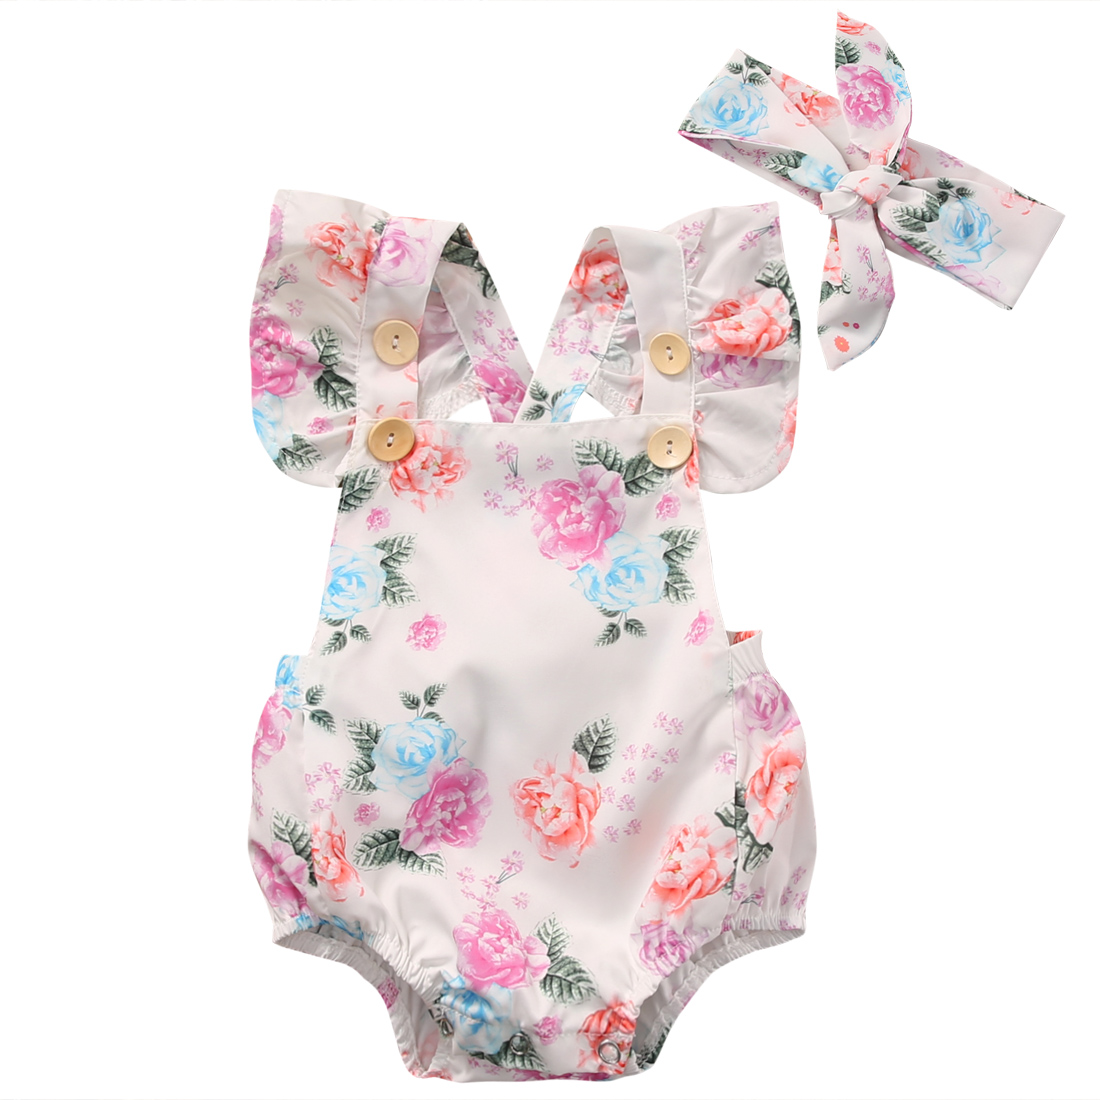 Ny Baby Girl Pretty Summer Romper Flower Romper Barn Baby Girl Baby Blommig romper Baby Girl Boutique Outfits